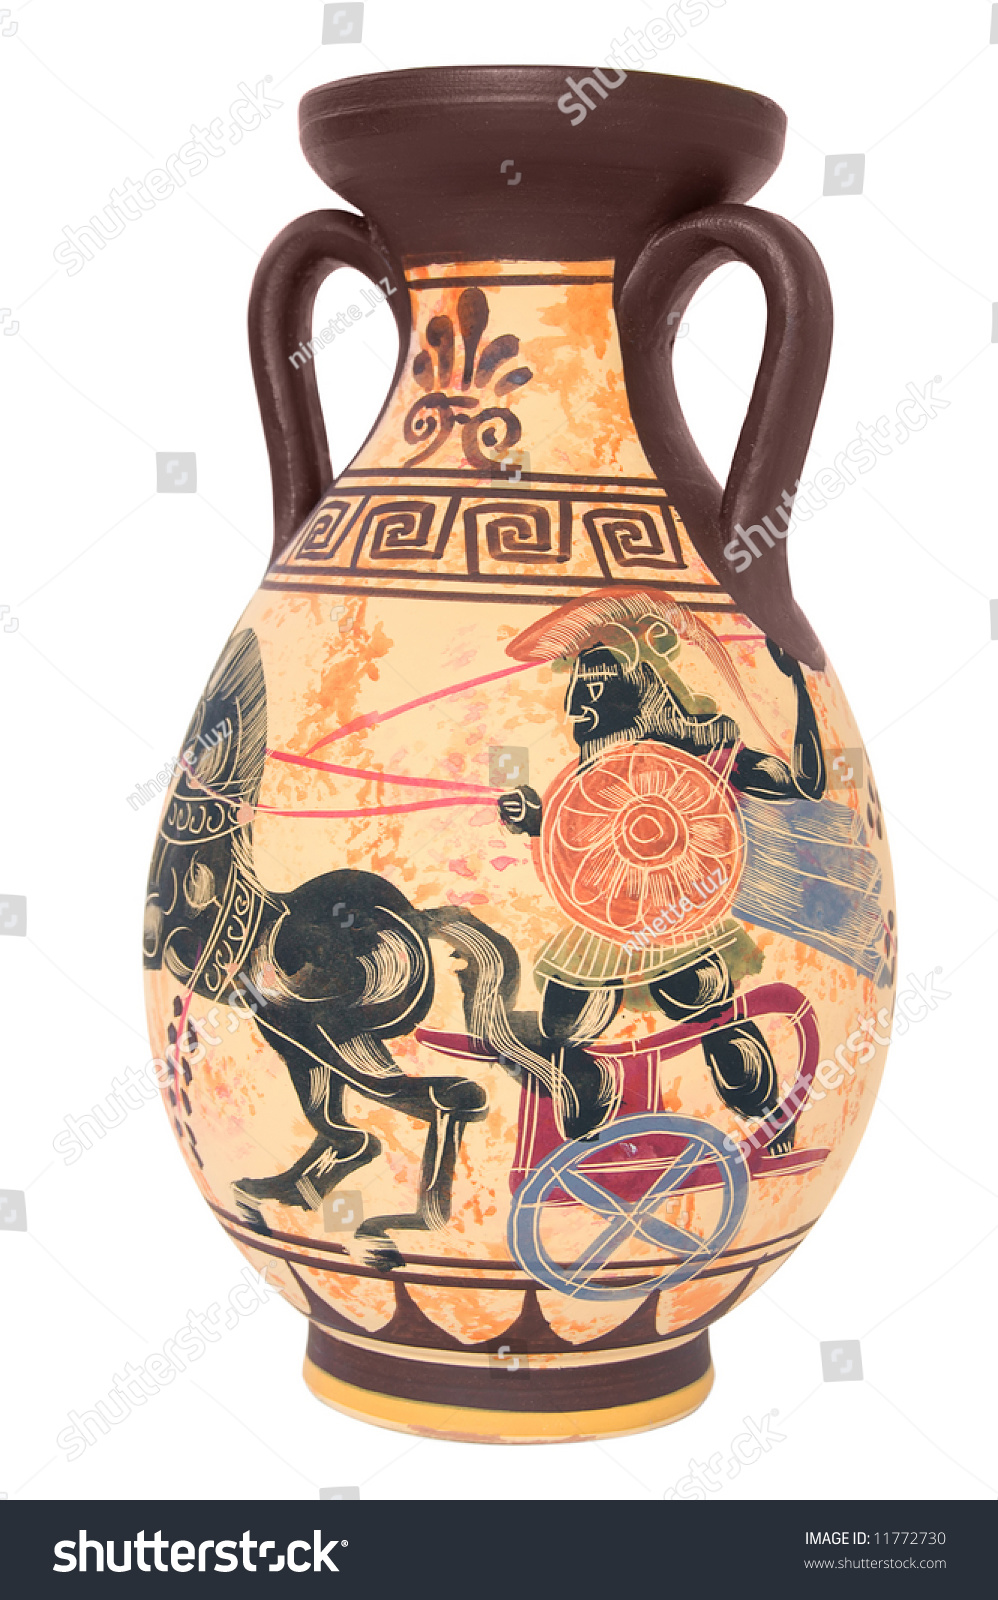 Ancient greek vase isolated on white stock photo 11772730 ancient greek vase isolated on white background reviewsmspy